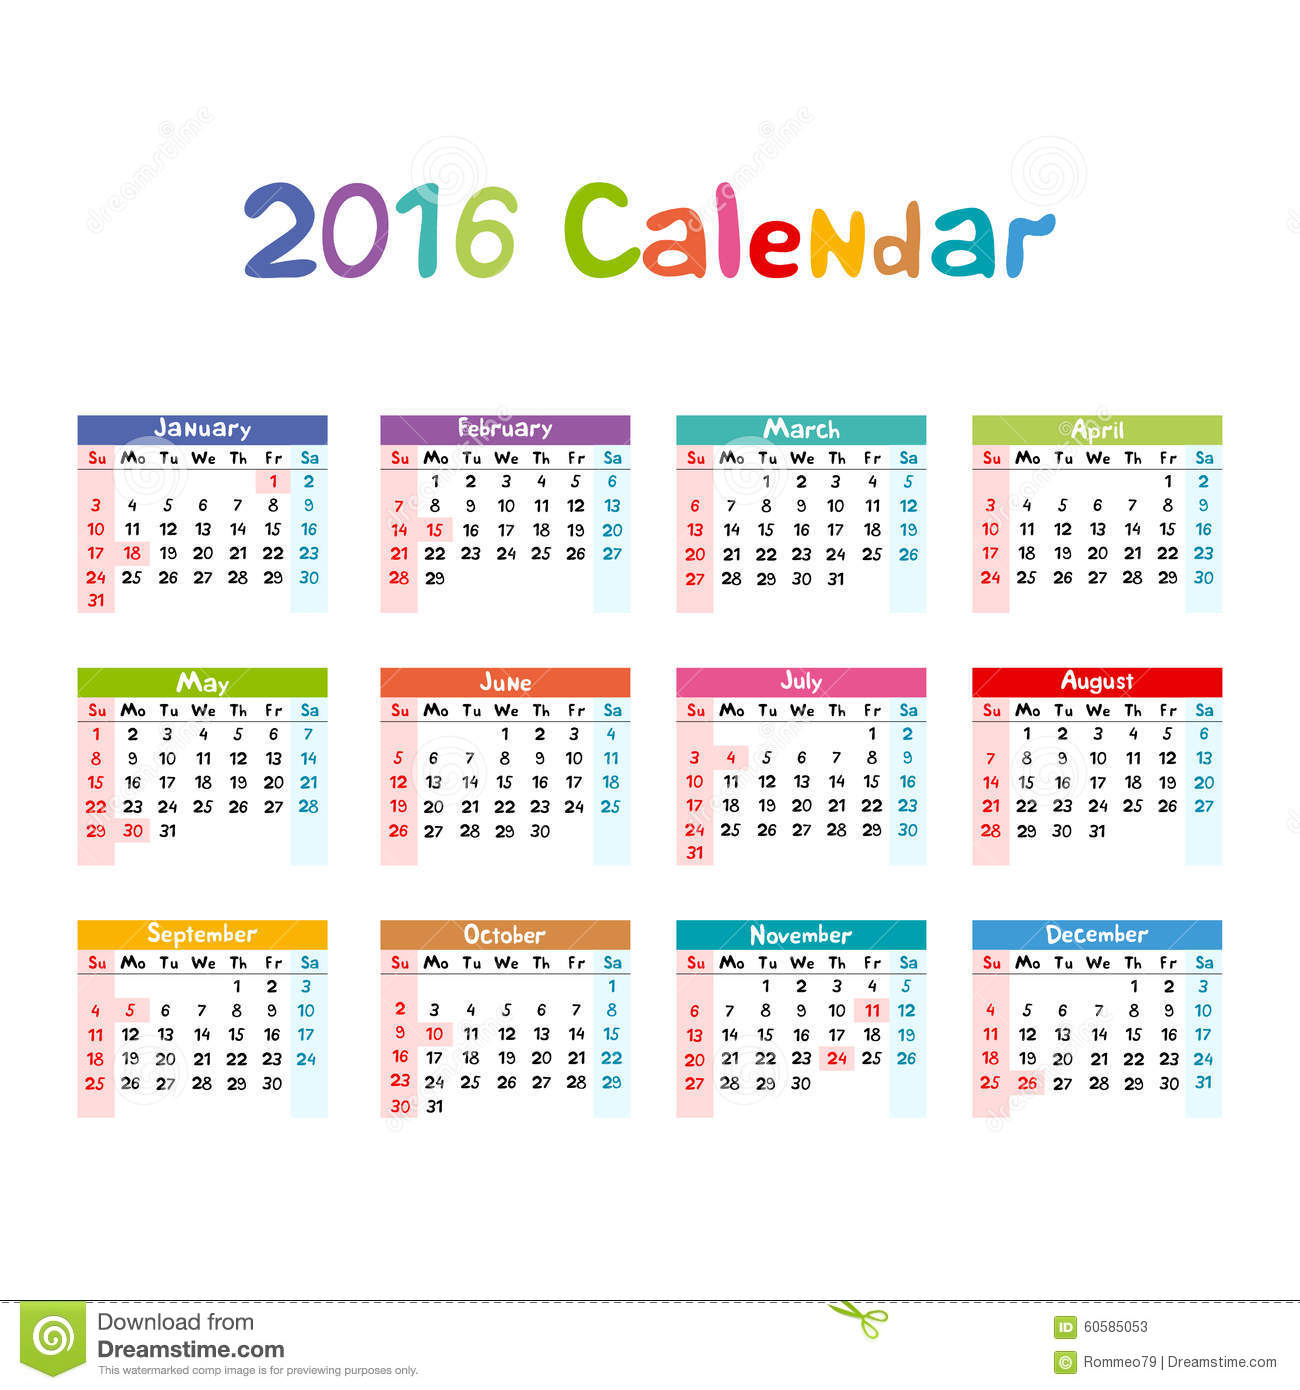 Calendar Illustration Vector : Calendar illustration vector kids hand made stock